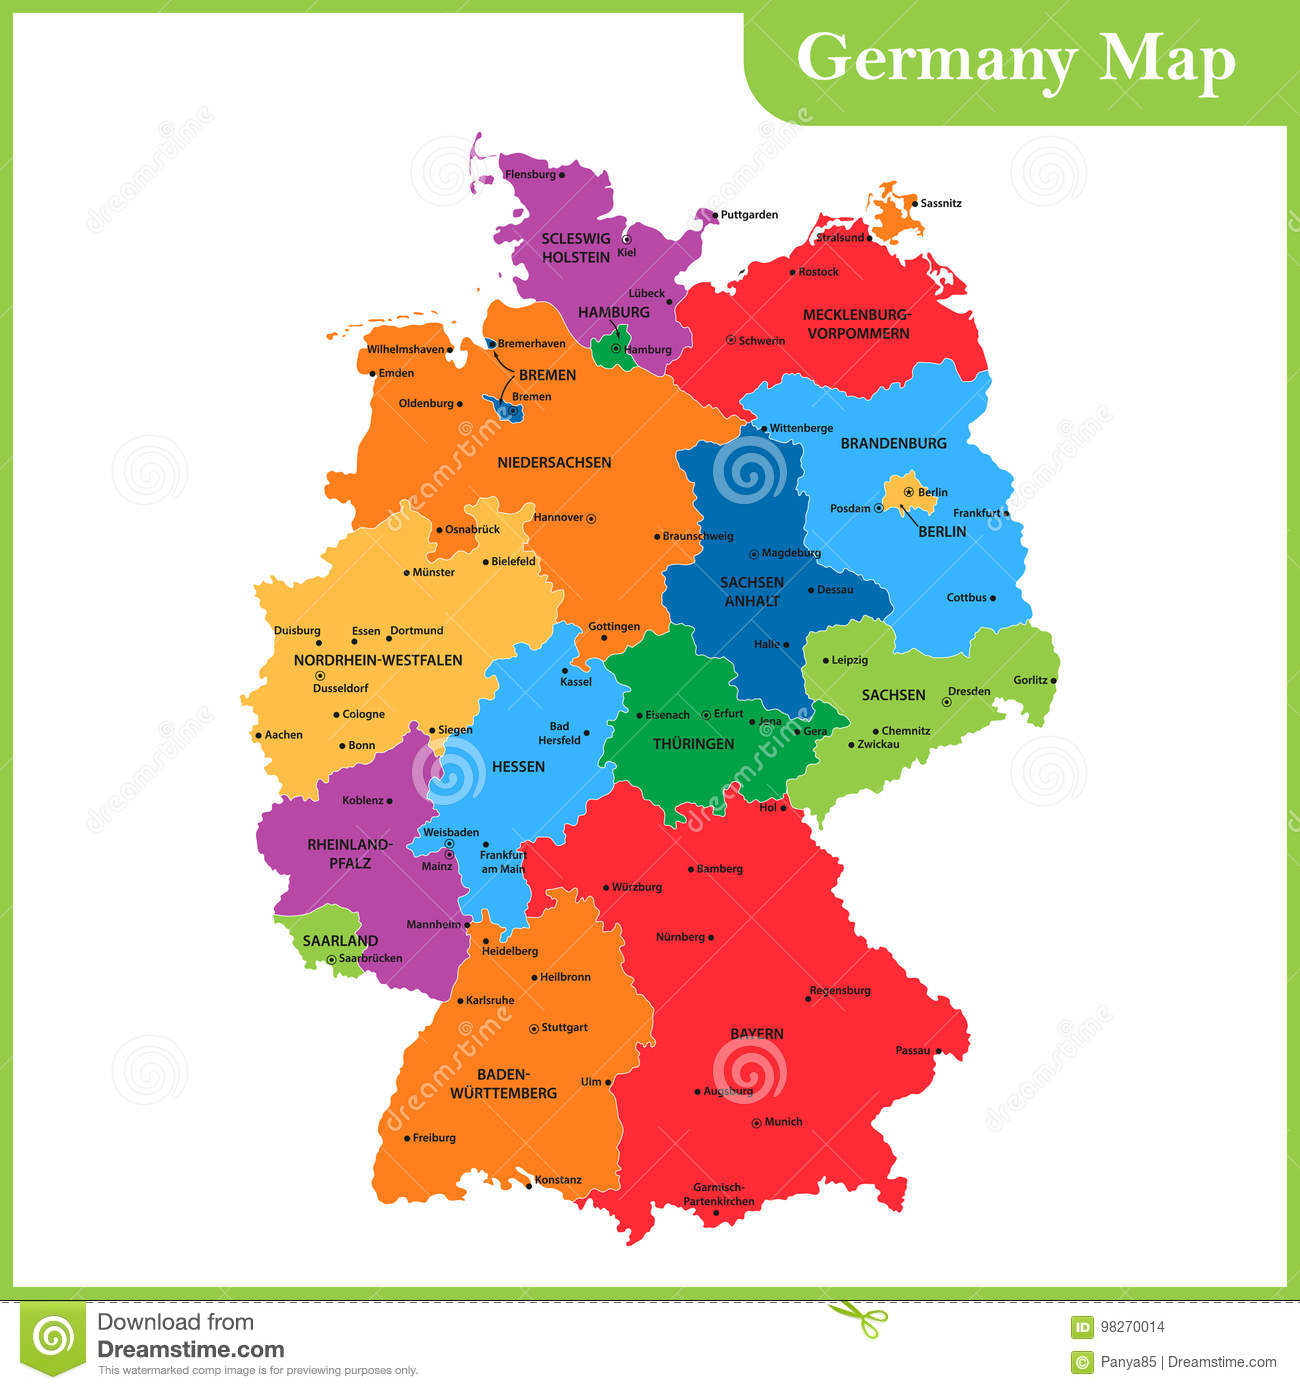 Download The Detailed Map Of The Germany With Regions Or States And Cities,  Capitals Stock